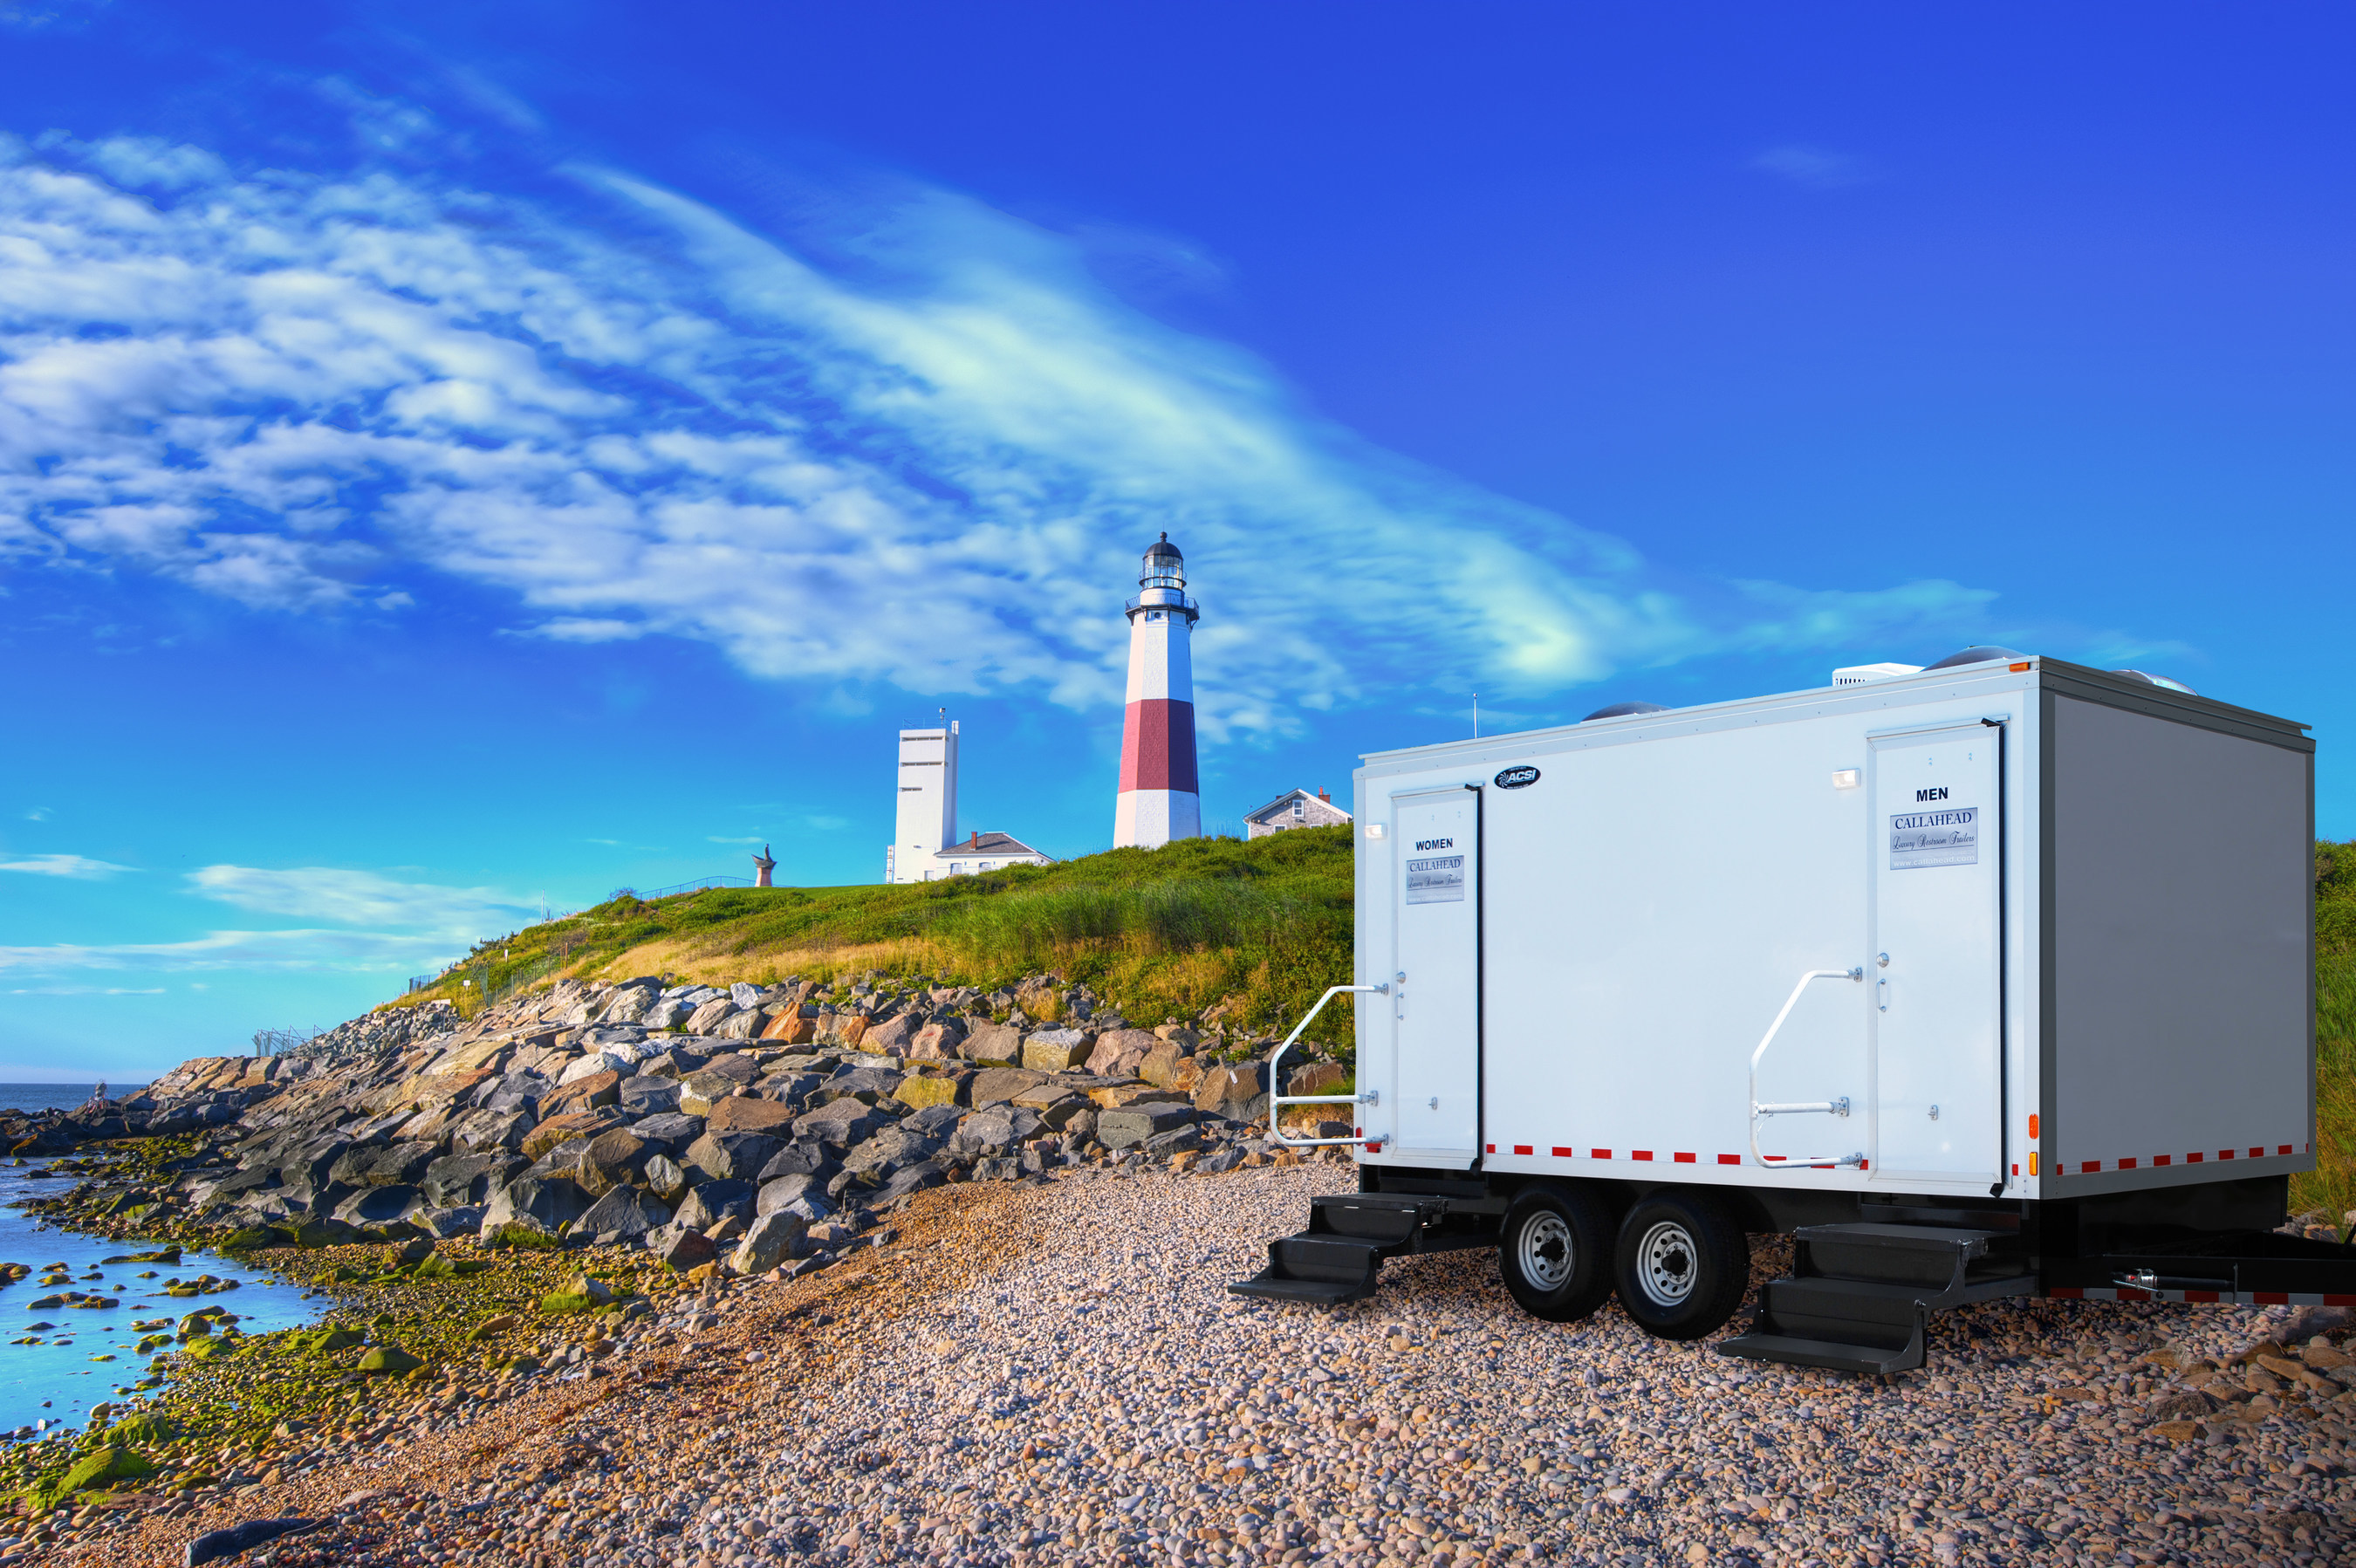 The Atlantic Portable Restroom trailer